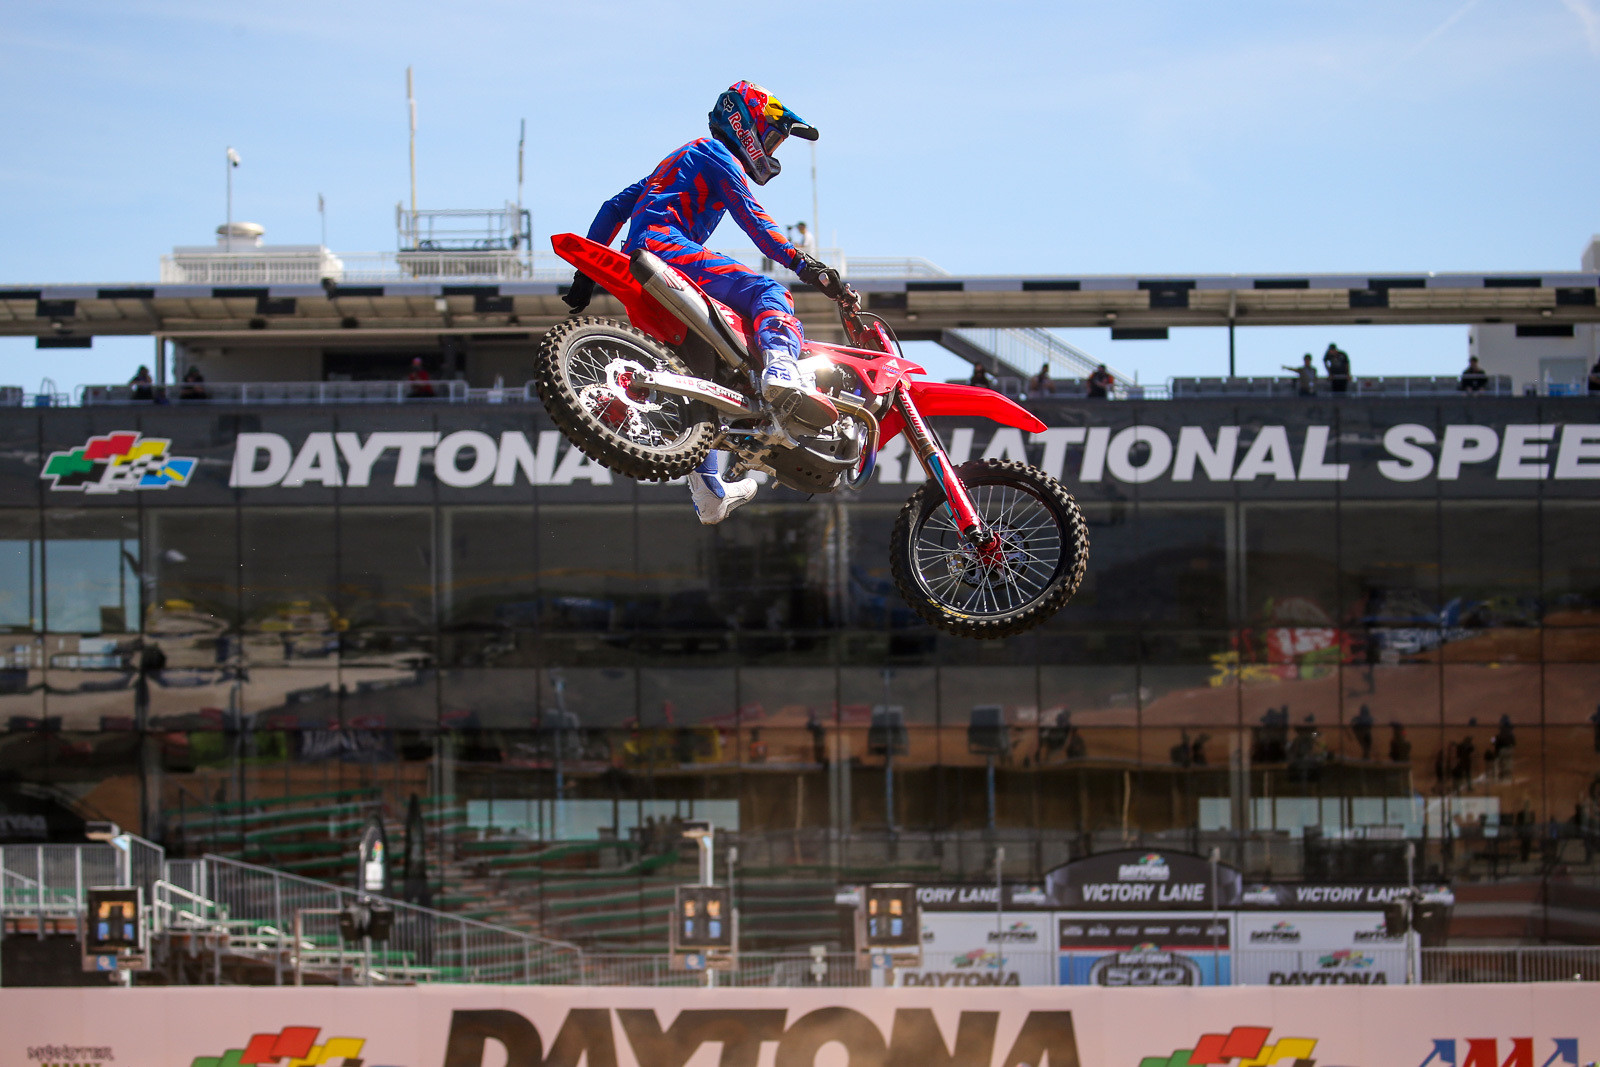 Ken Roczen getting a little loose on Friday. The 450 series points leader was also the fastest qualifier on Saturday.